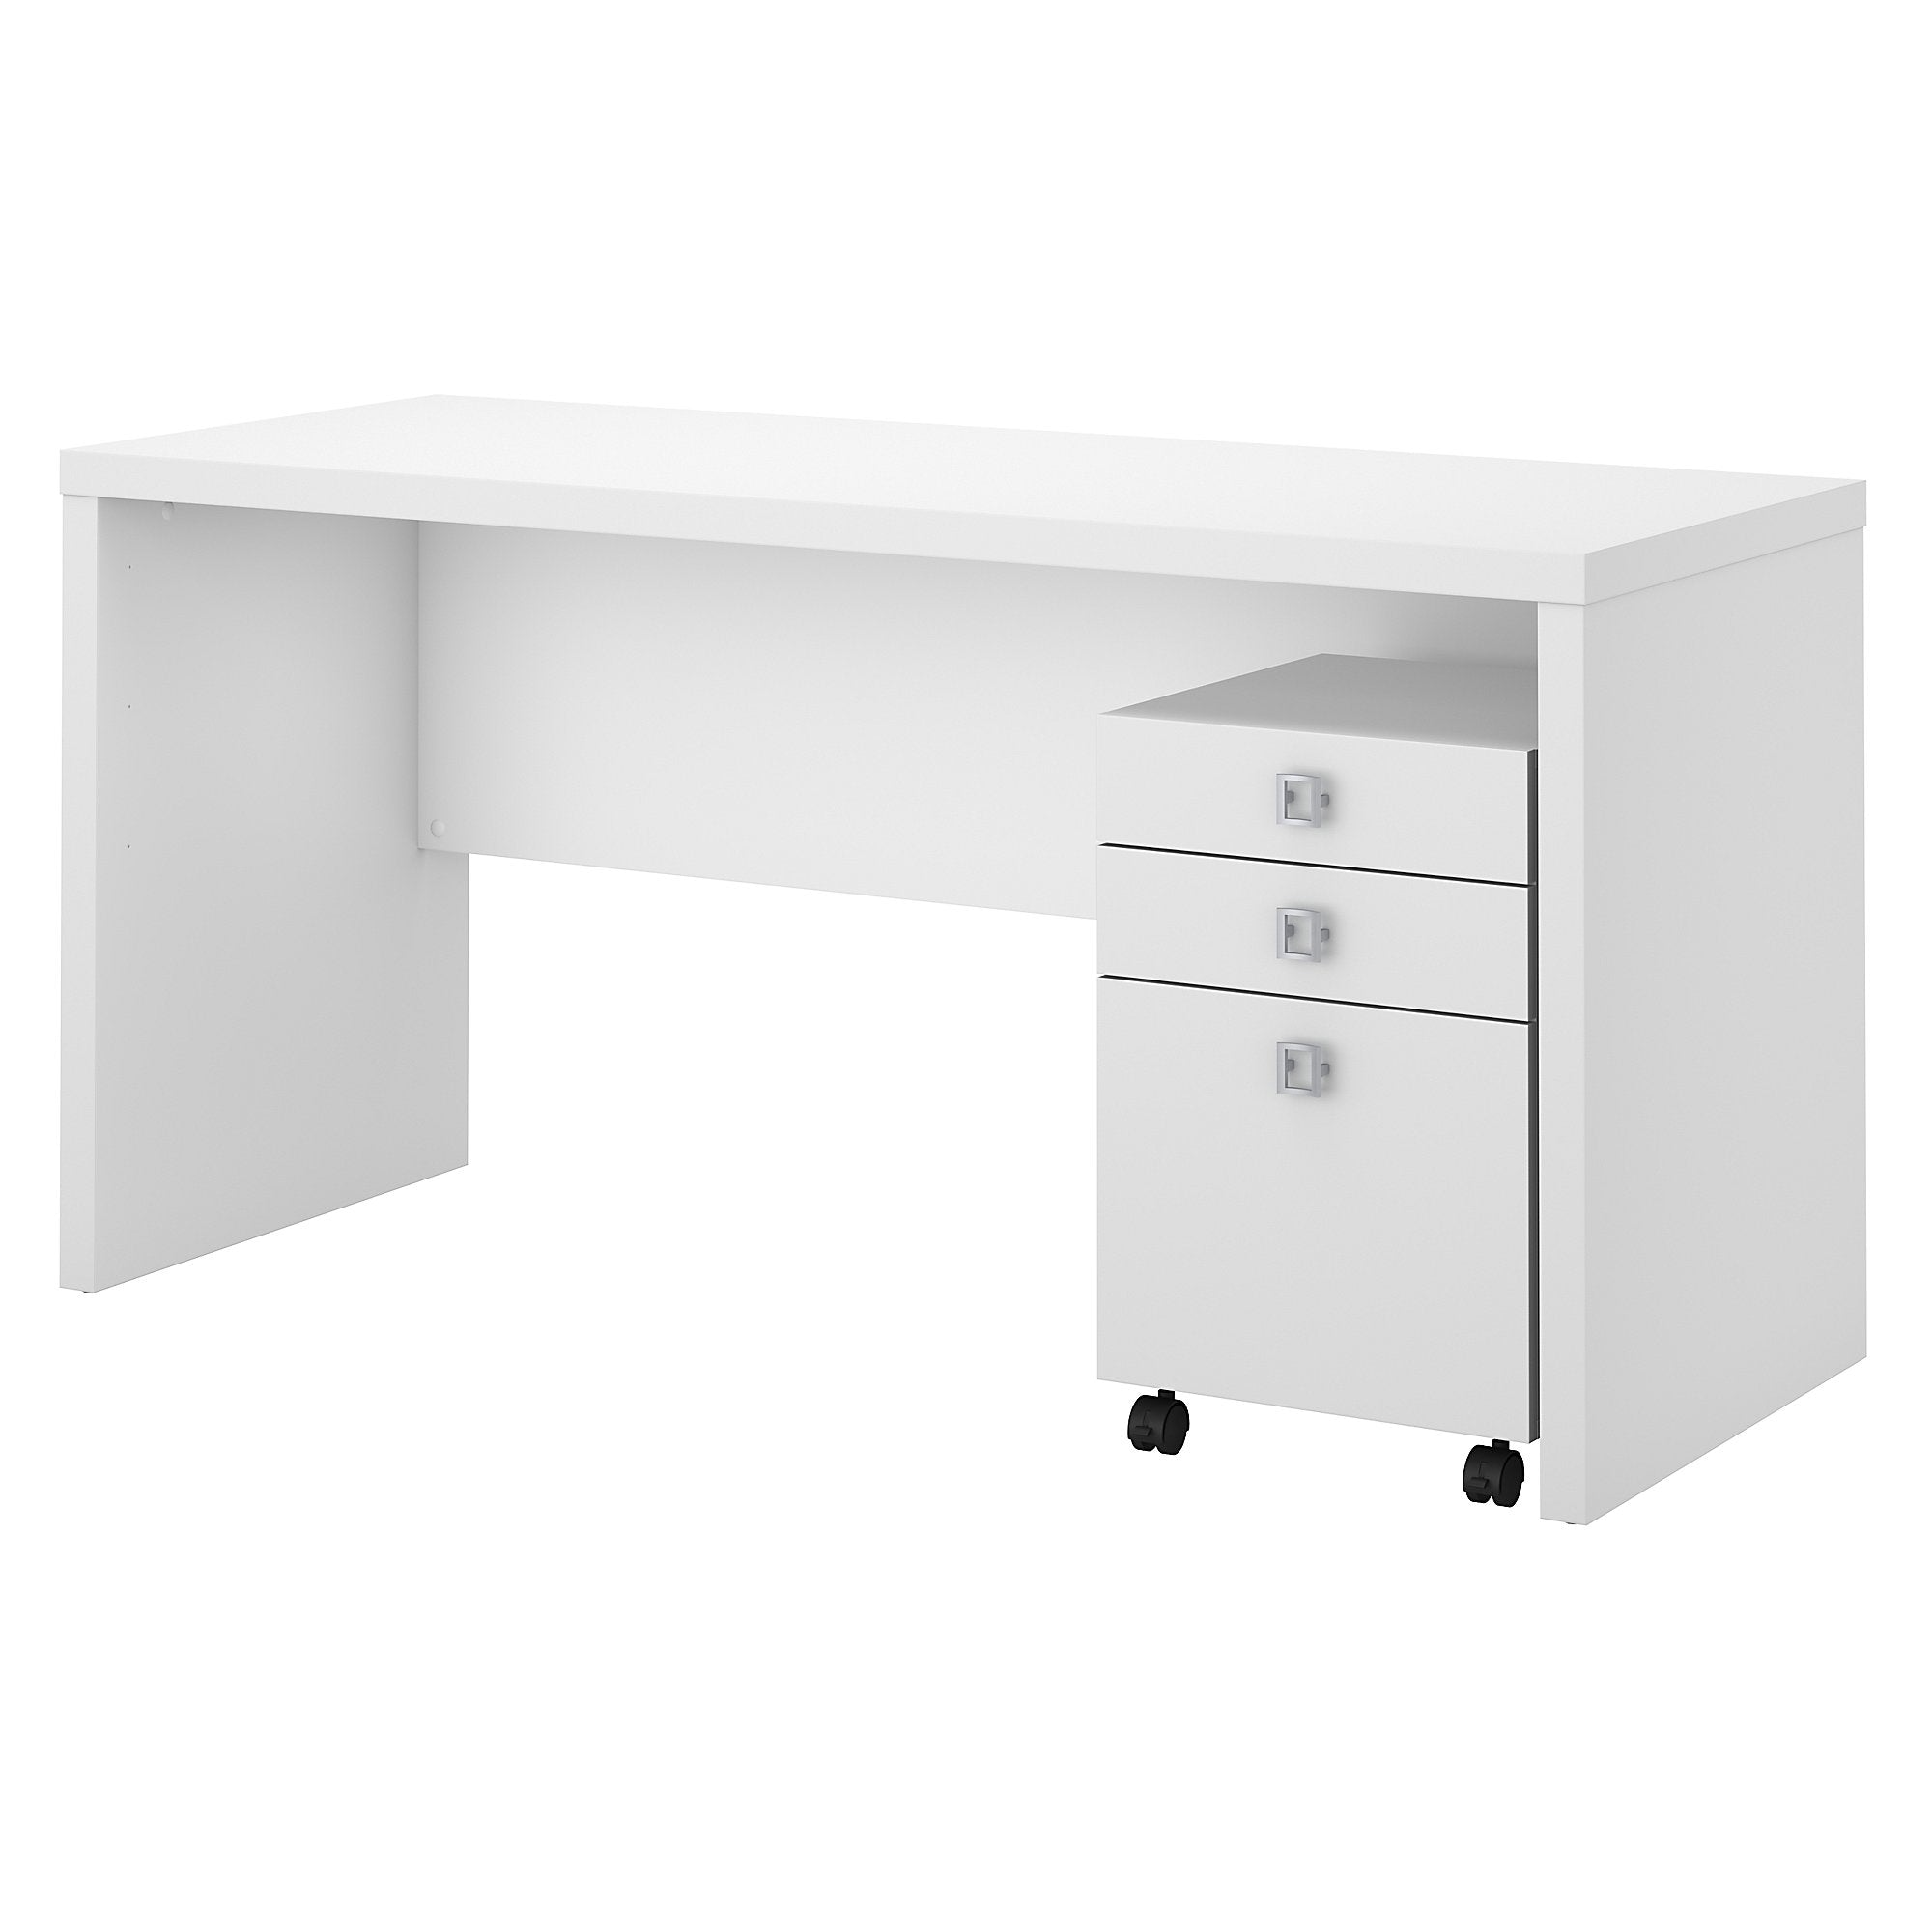 Office by kathy ireland® Echo Credenza Desk with Mobile File Cabinet | Pure White